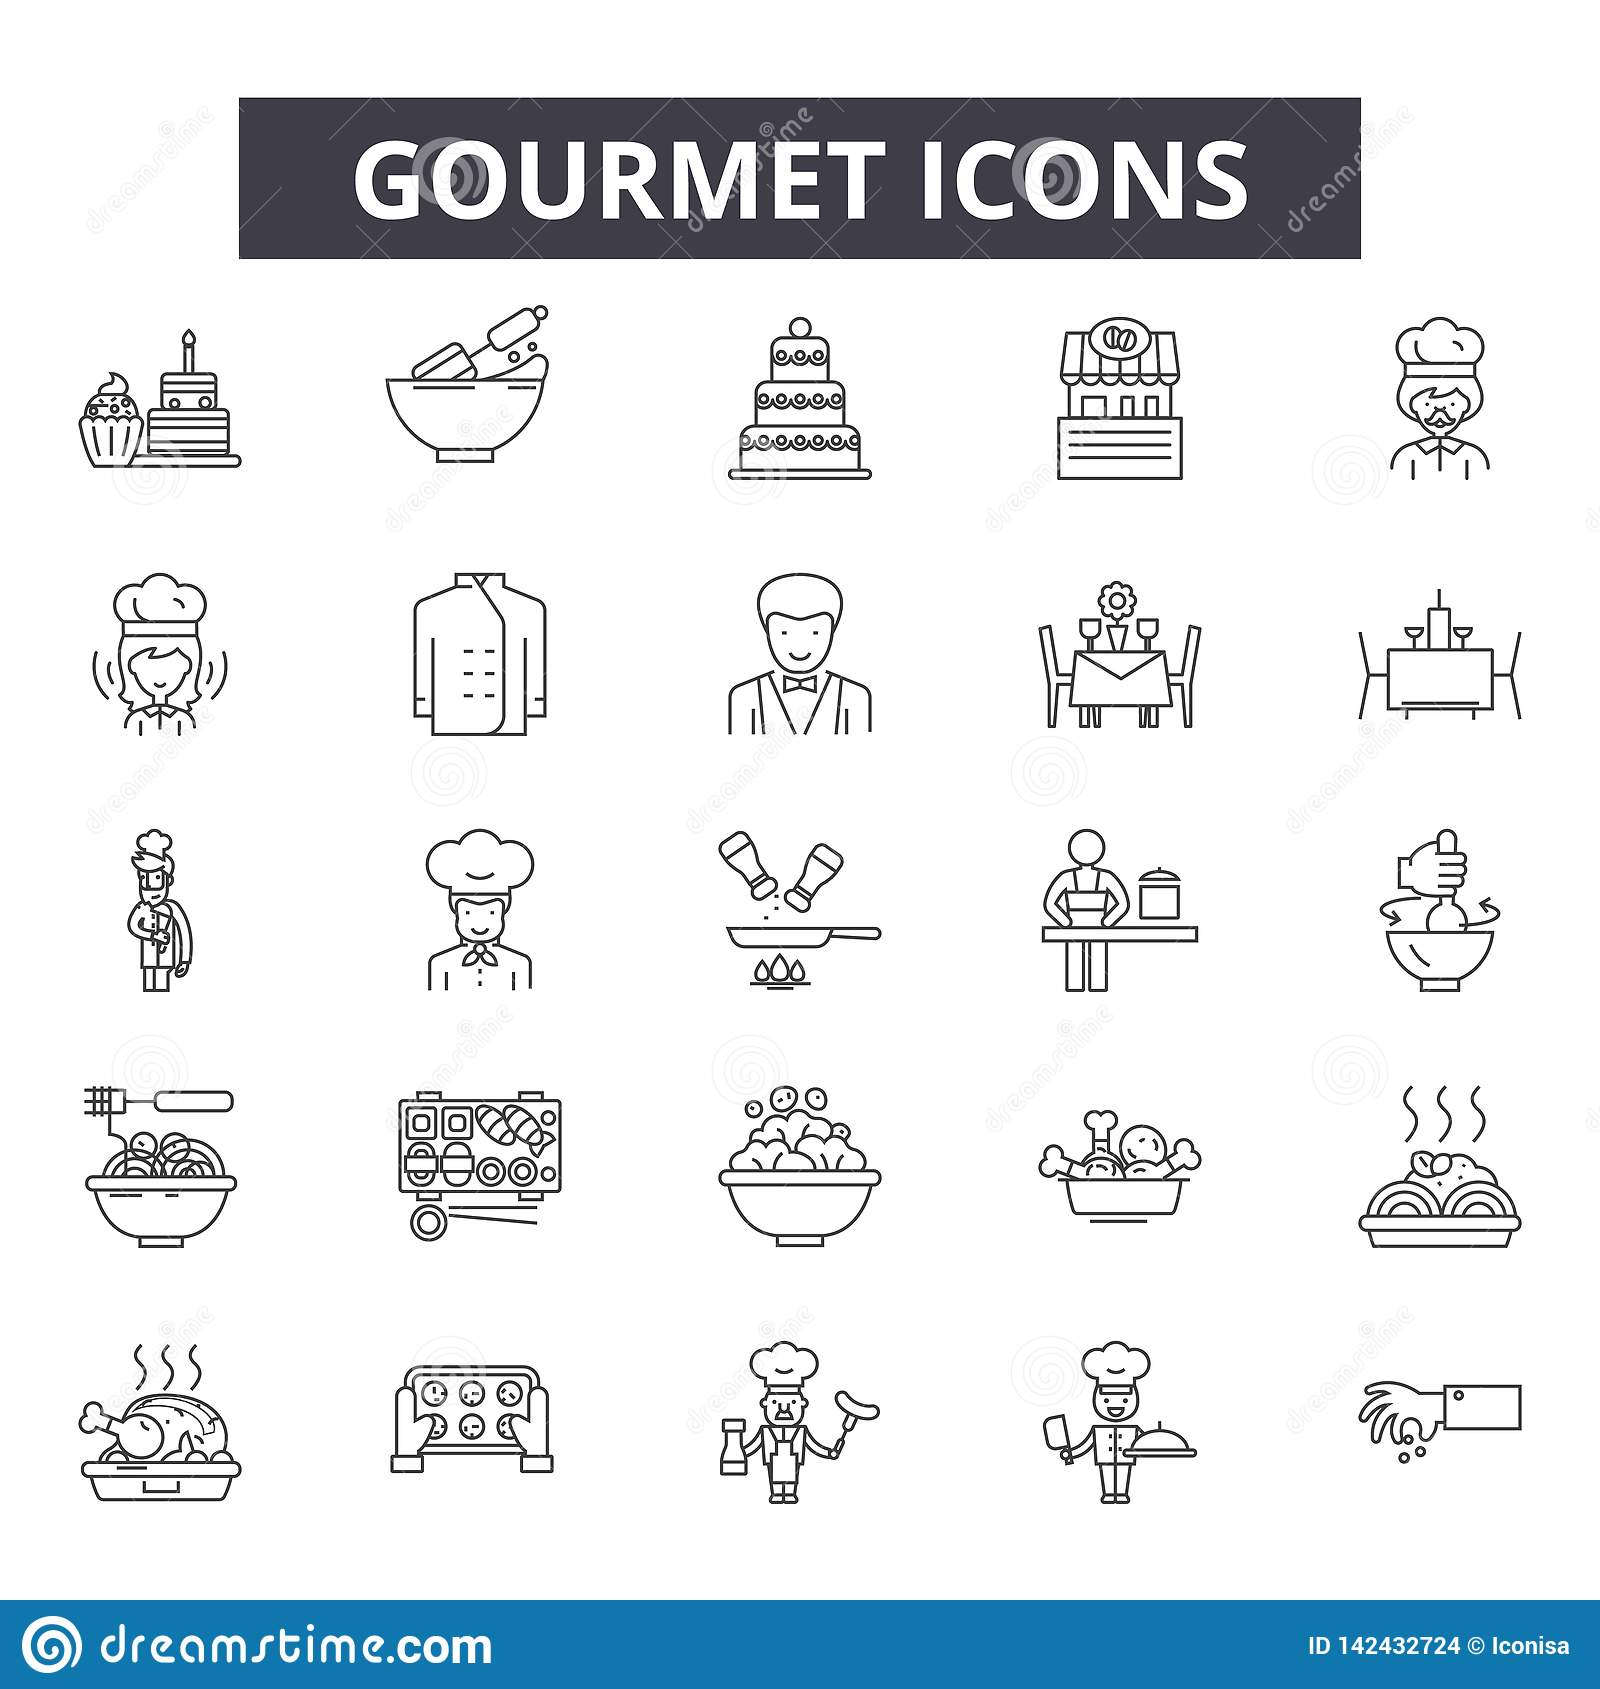 Gourmet line icons for web and mobile design. Editable stroke signs. Gourmet outline concept illustrations